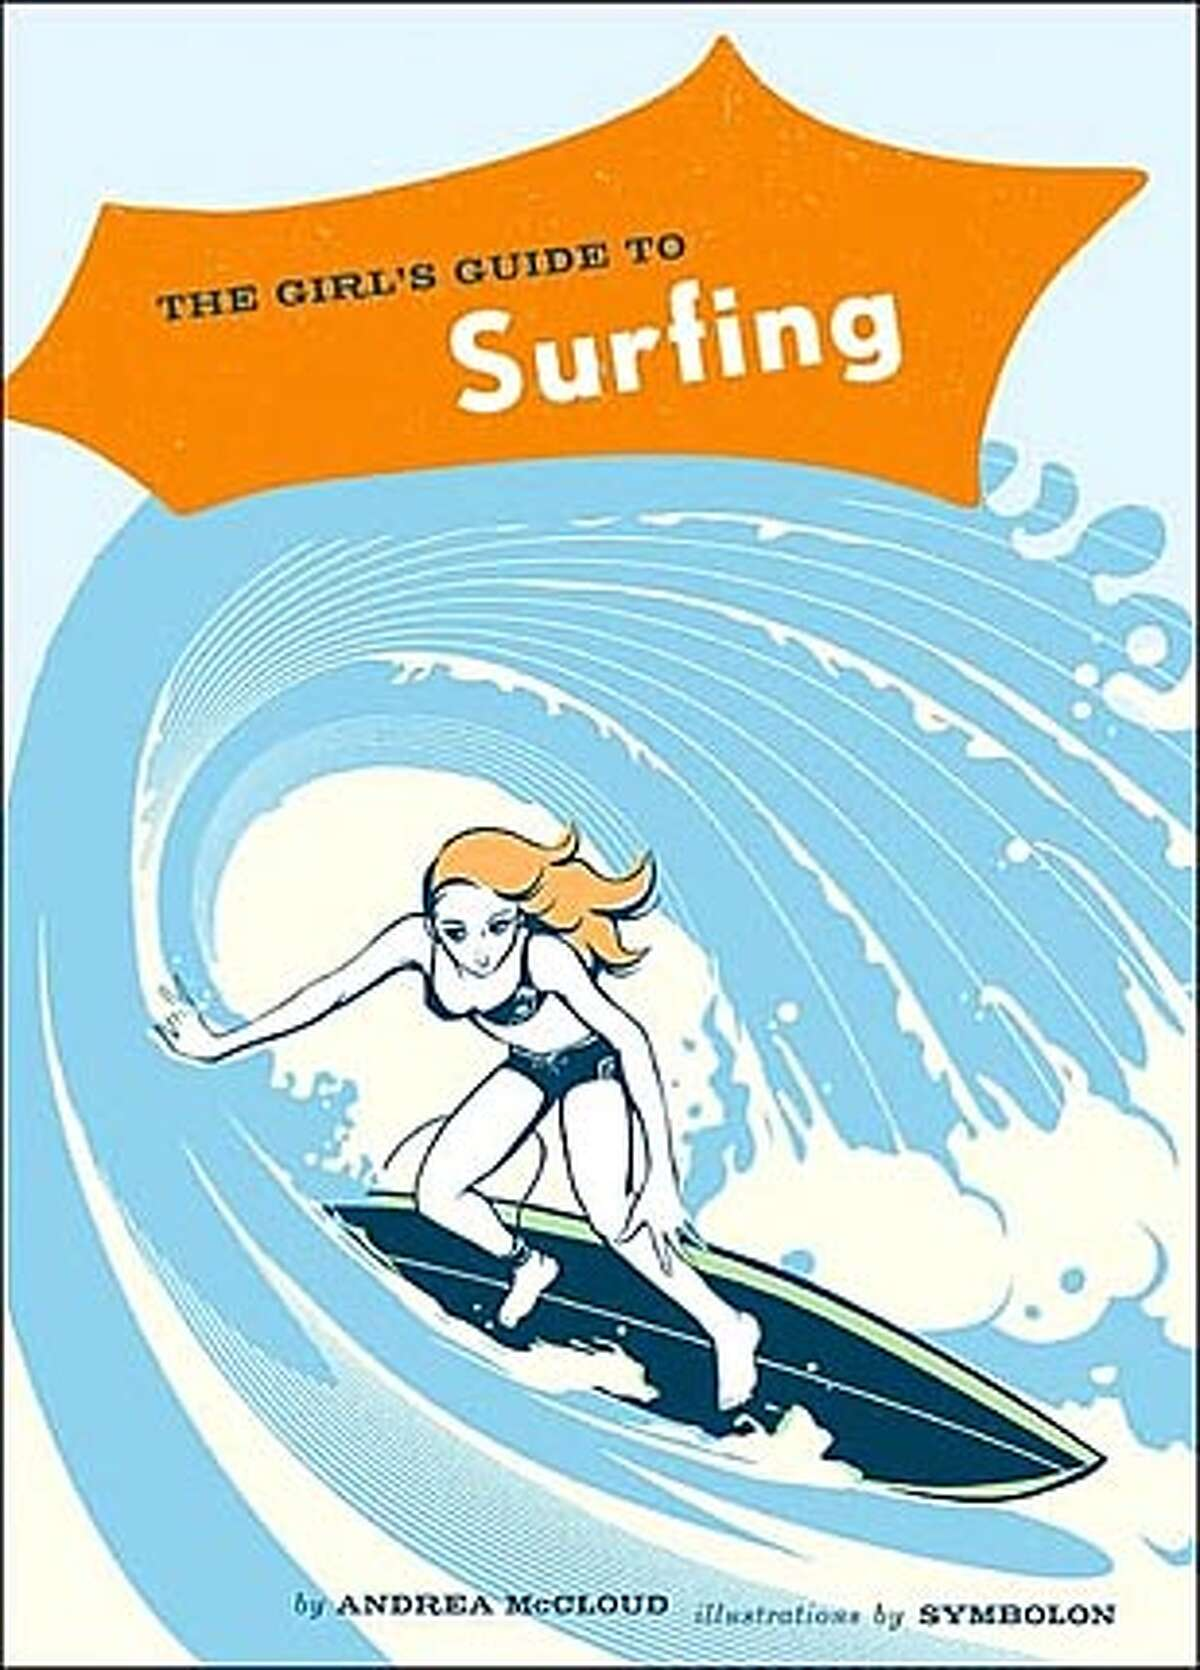 Book cover art for, The Girl's Guide to Surfing,